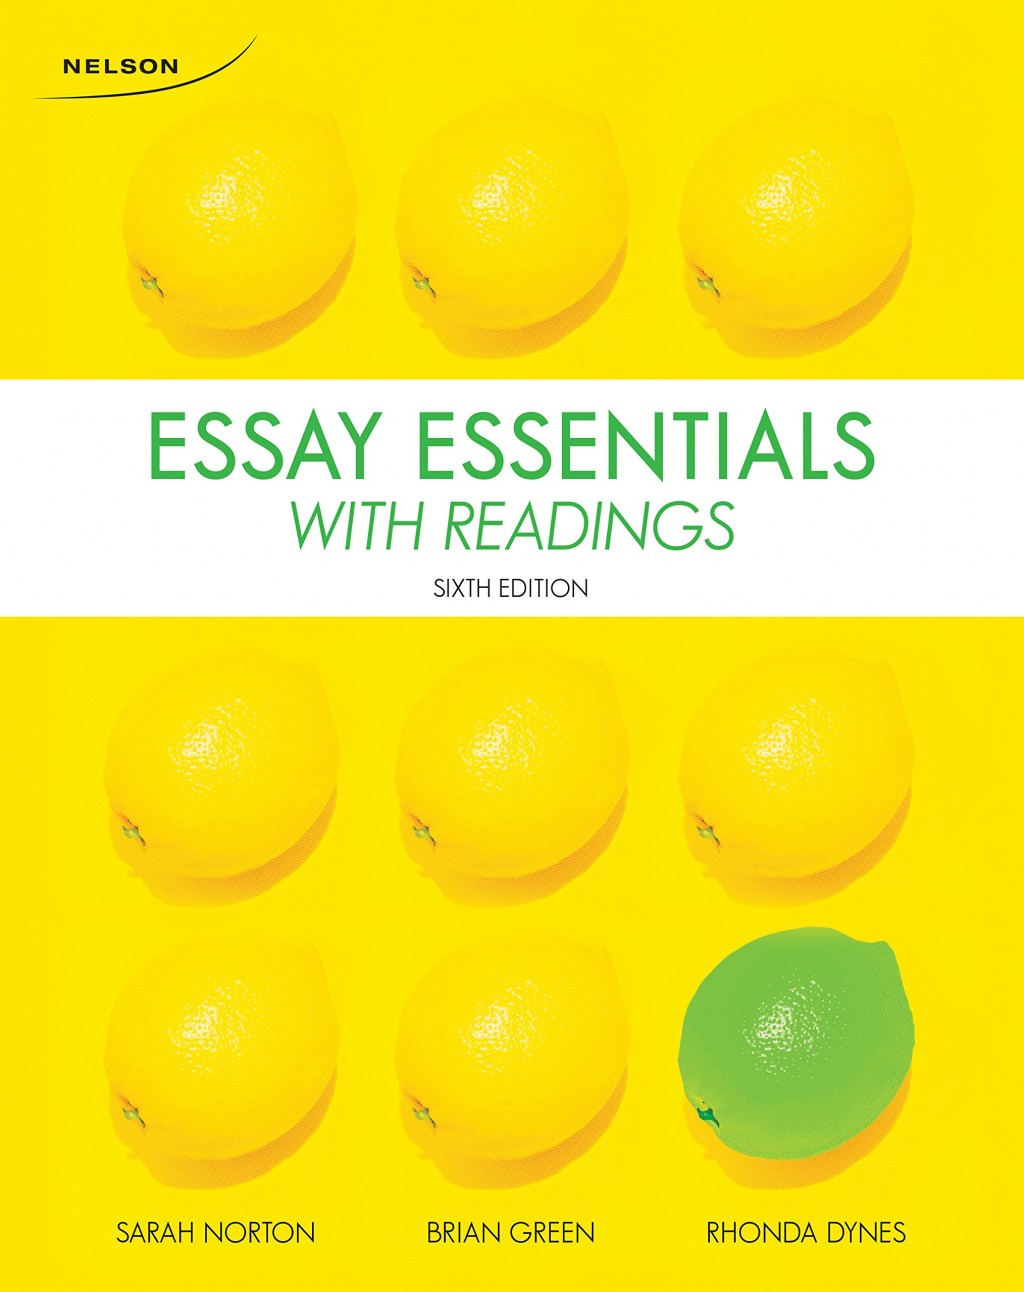 006 Essay Example Real Essays With Readings 5th Edition Wonderful Answer Key Online Ebook Large